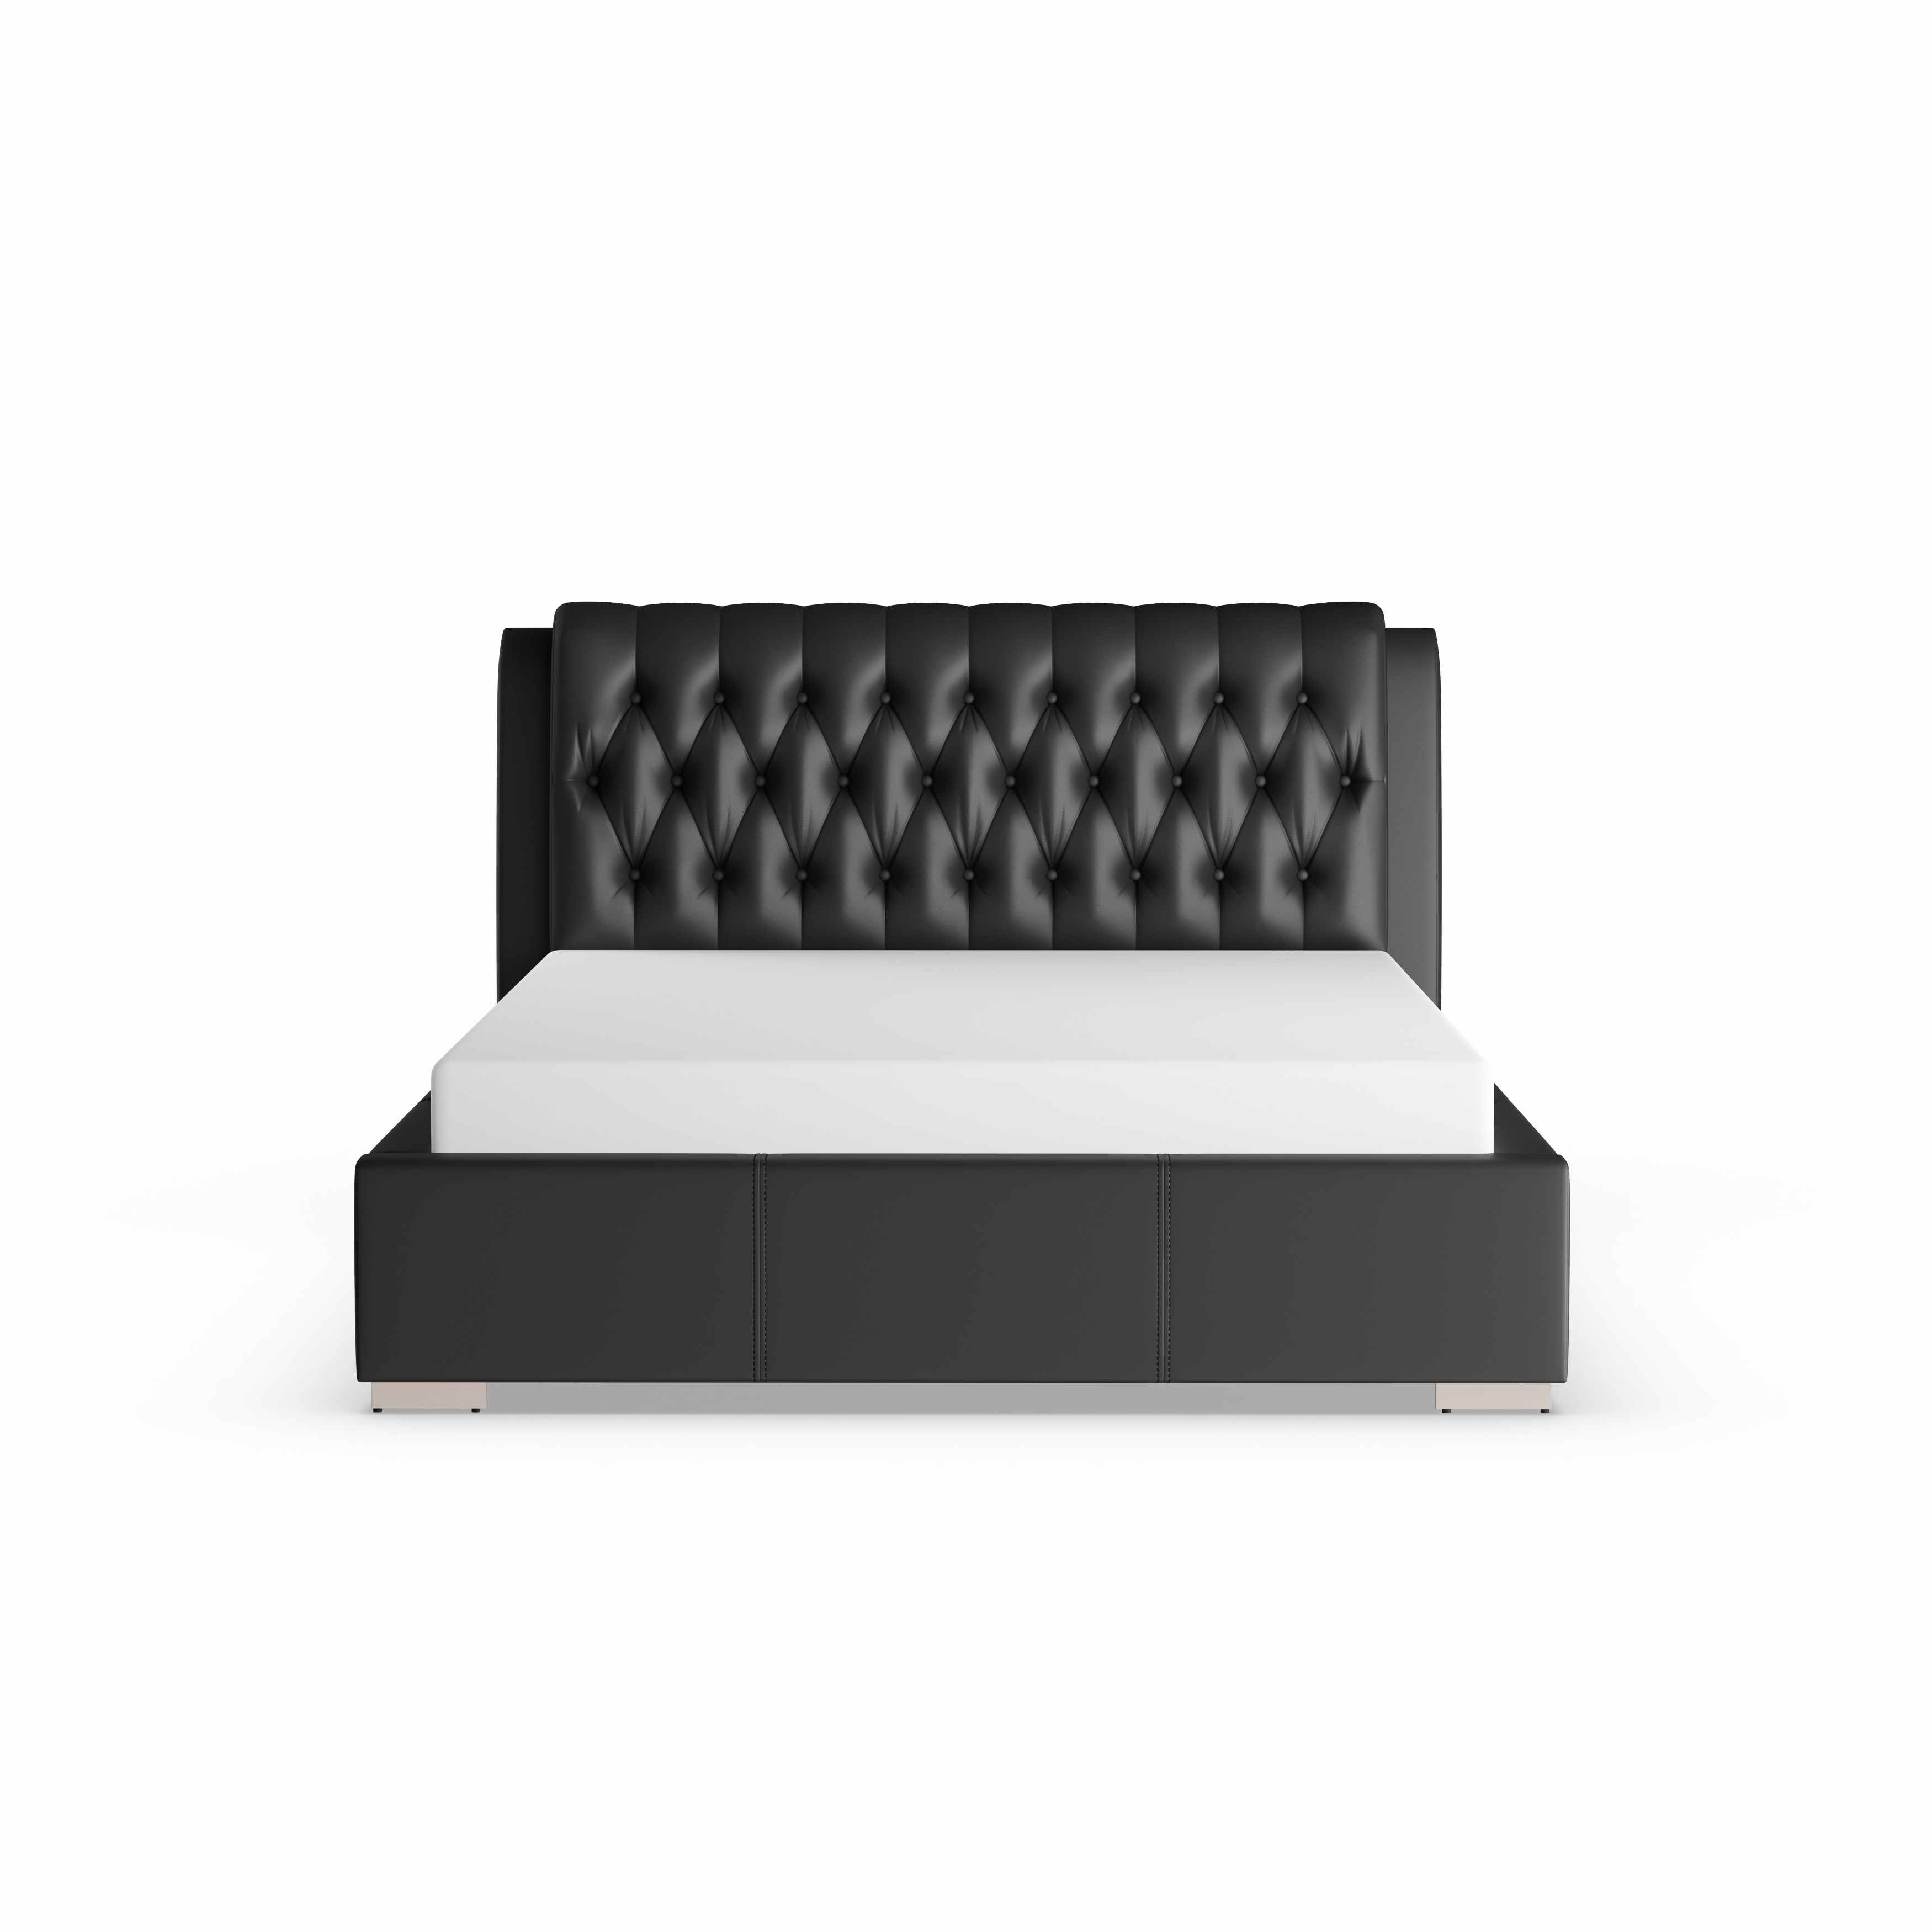 bianca futon sofa bed review barrister velvet shop black modern with tufted headboard queen size free shipping today overstock com 20543365